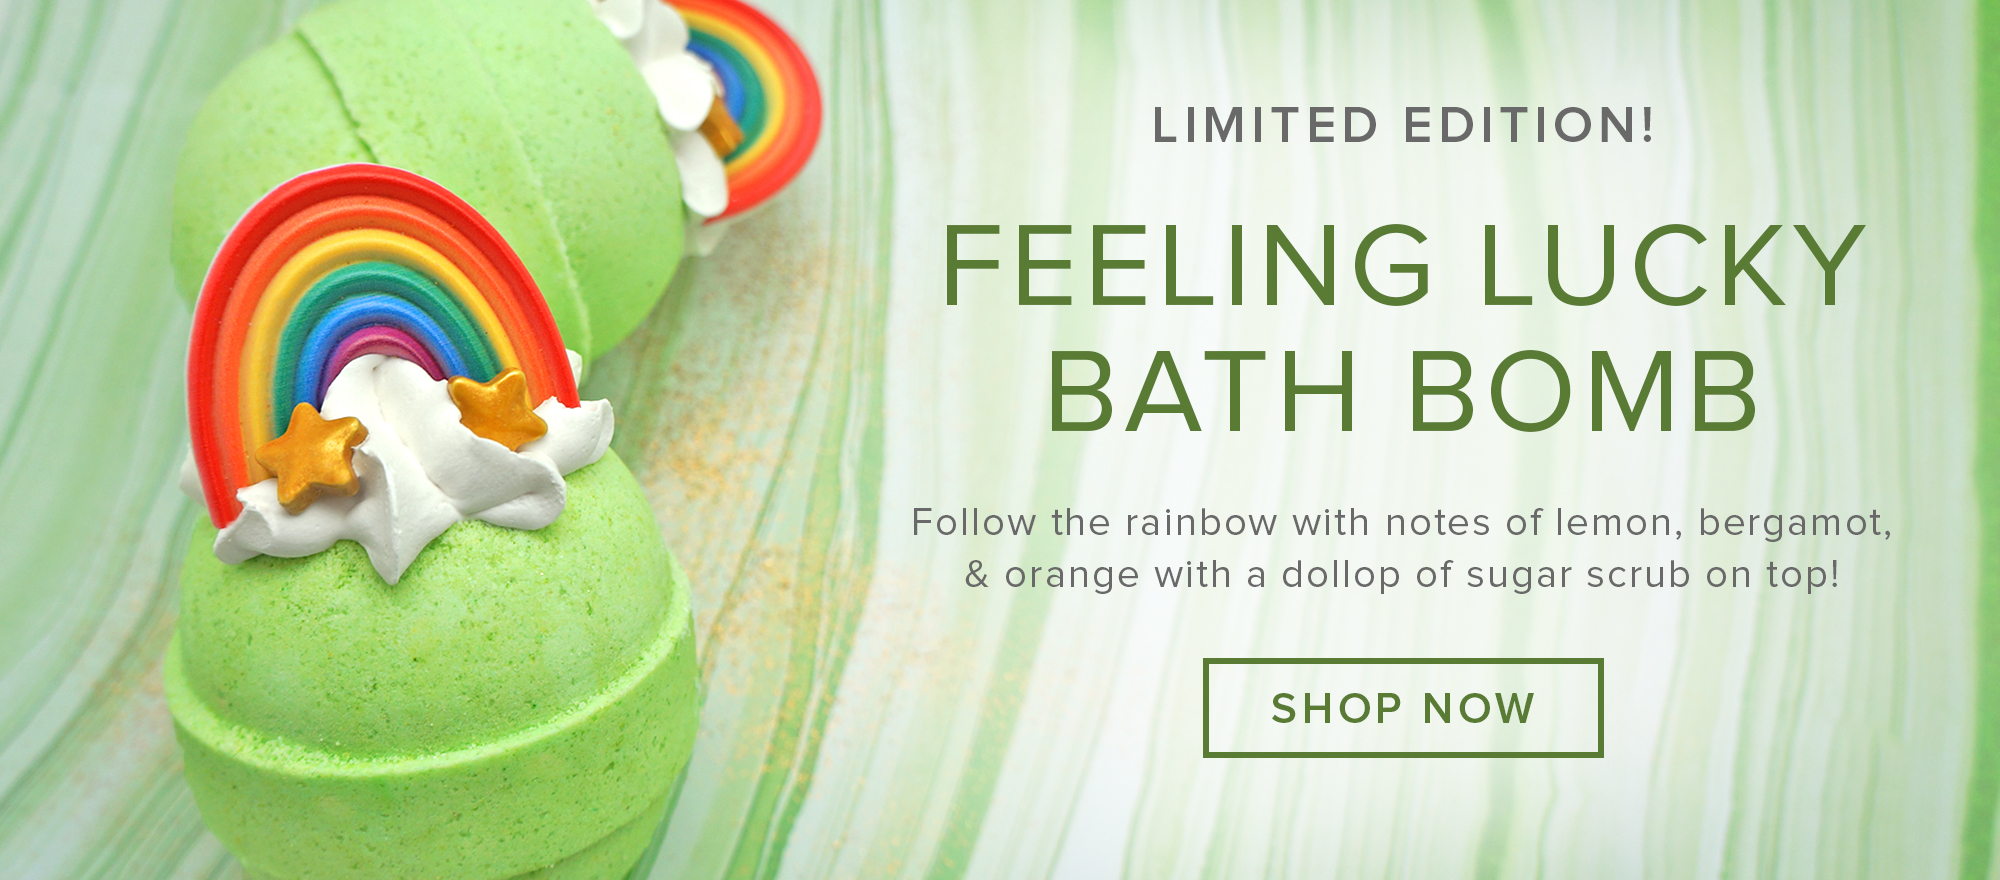 NEW! Feeling Lucky Bath Bomb